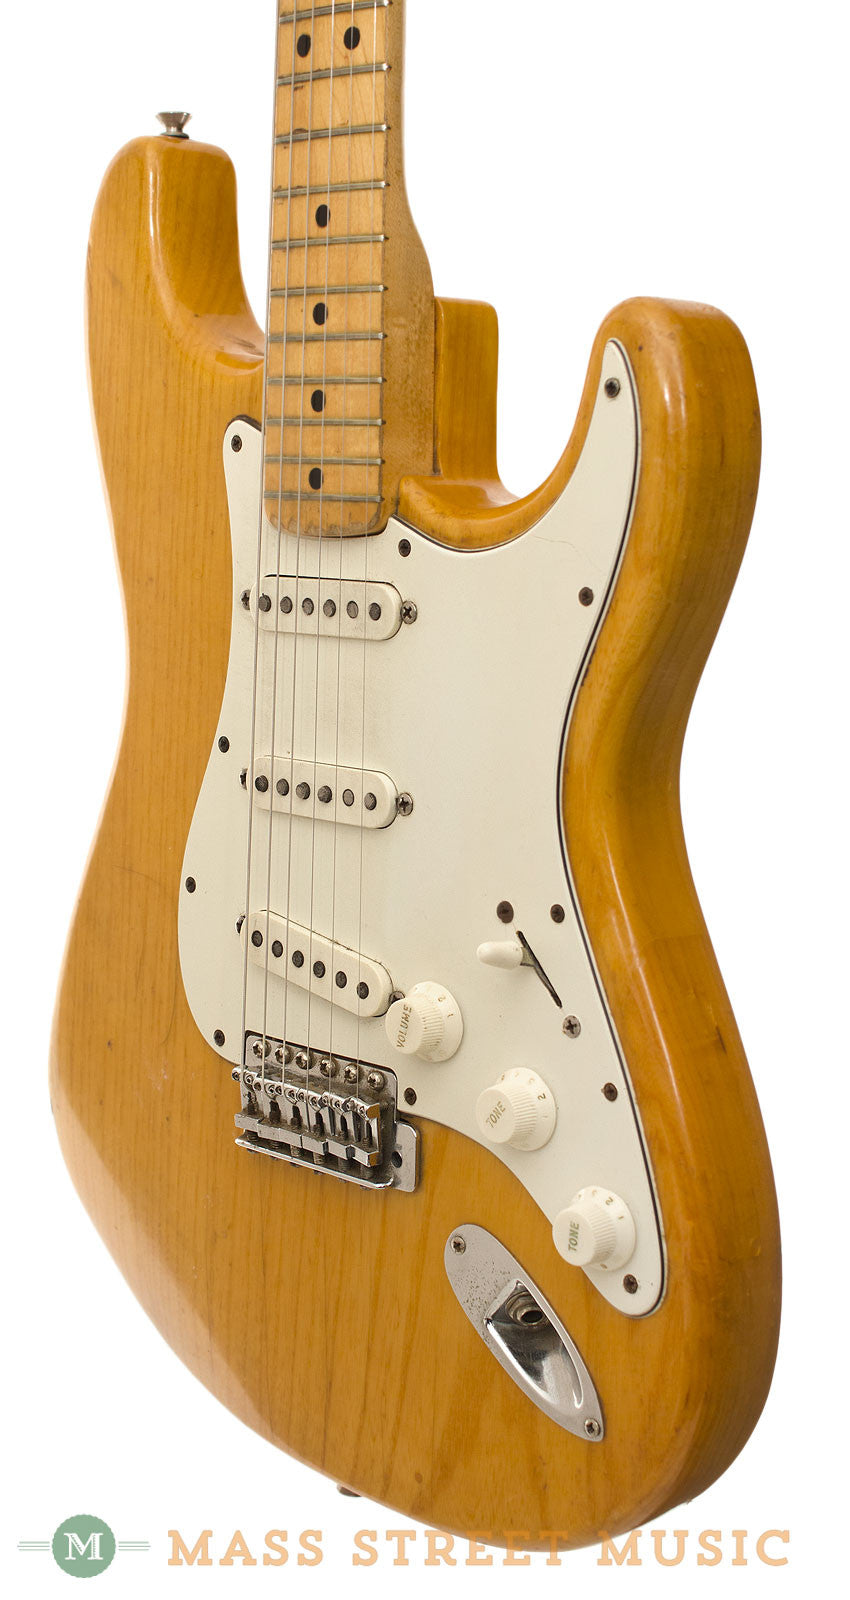 fender stratocaster 1972 electric guitar natural finish with